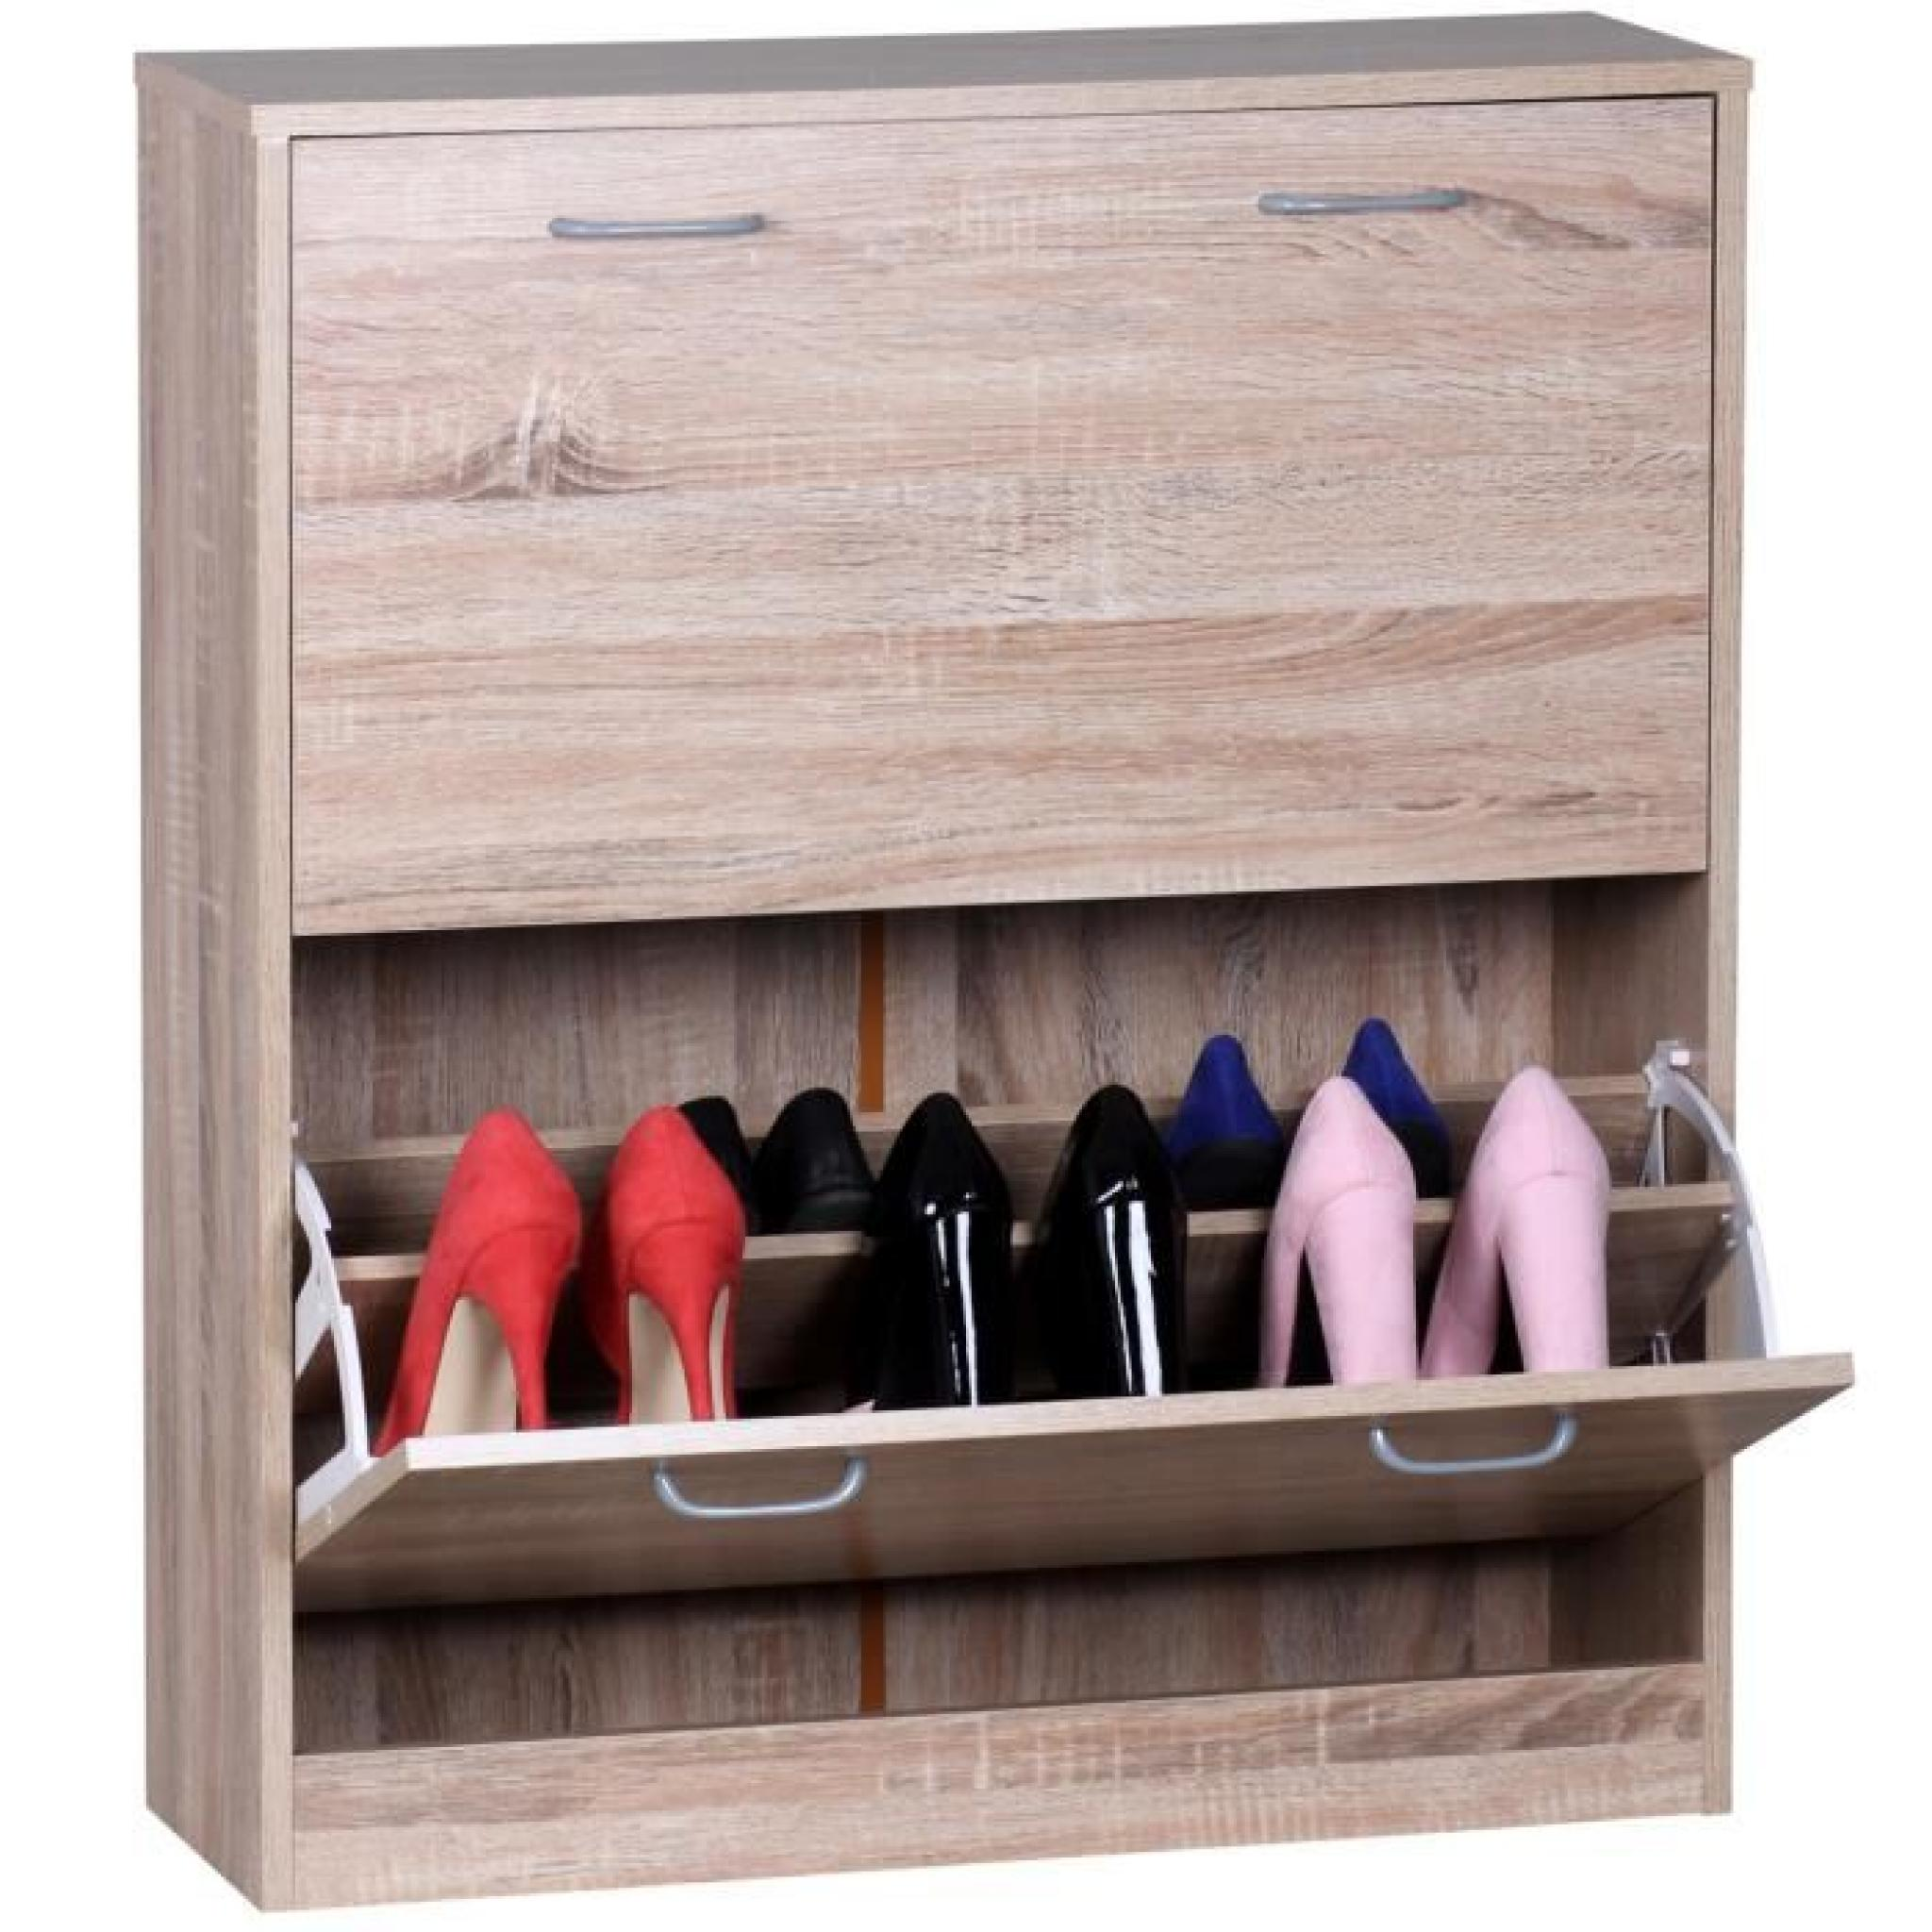 meuble chaussures en bois agglom r couleur ch ne 87 x. Black Bedroom Furniture Sets. Home Design Ideas